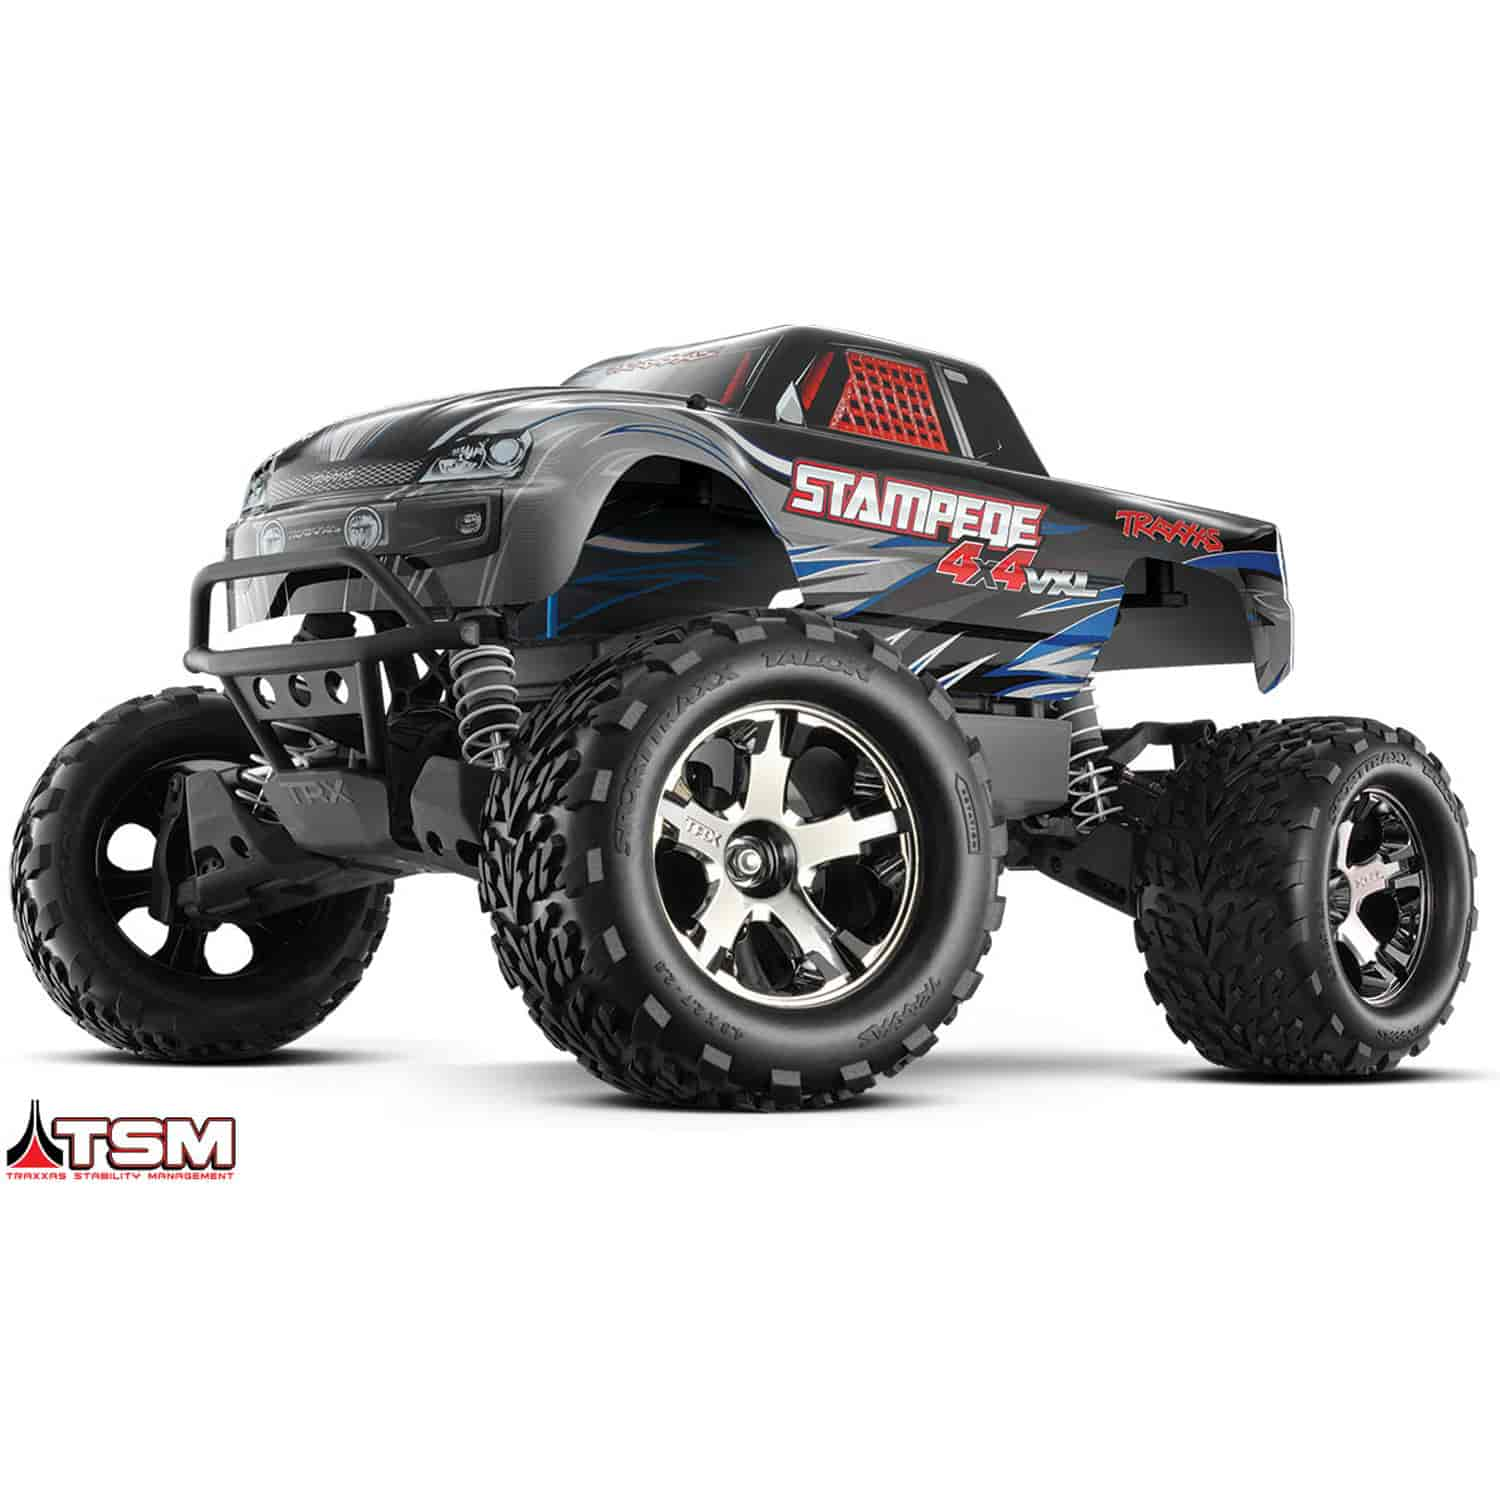 Traxxas Stampede Vxl 4x4 Brushless Photo Trend Ideas 1 10 Scale 2wd Monster Truck 3607l 67086 3 Slvr